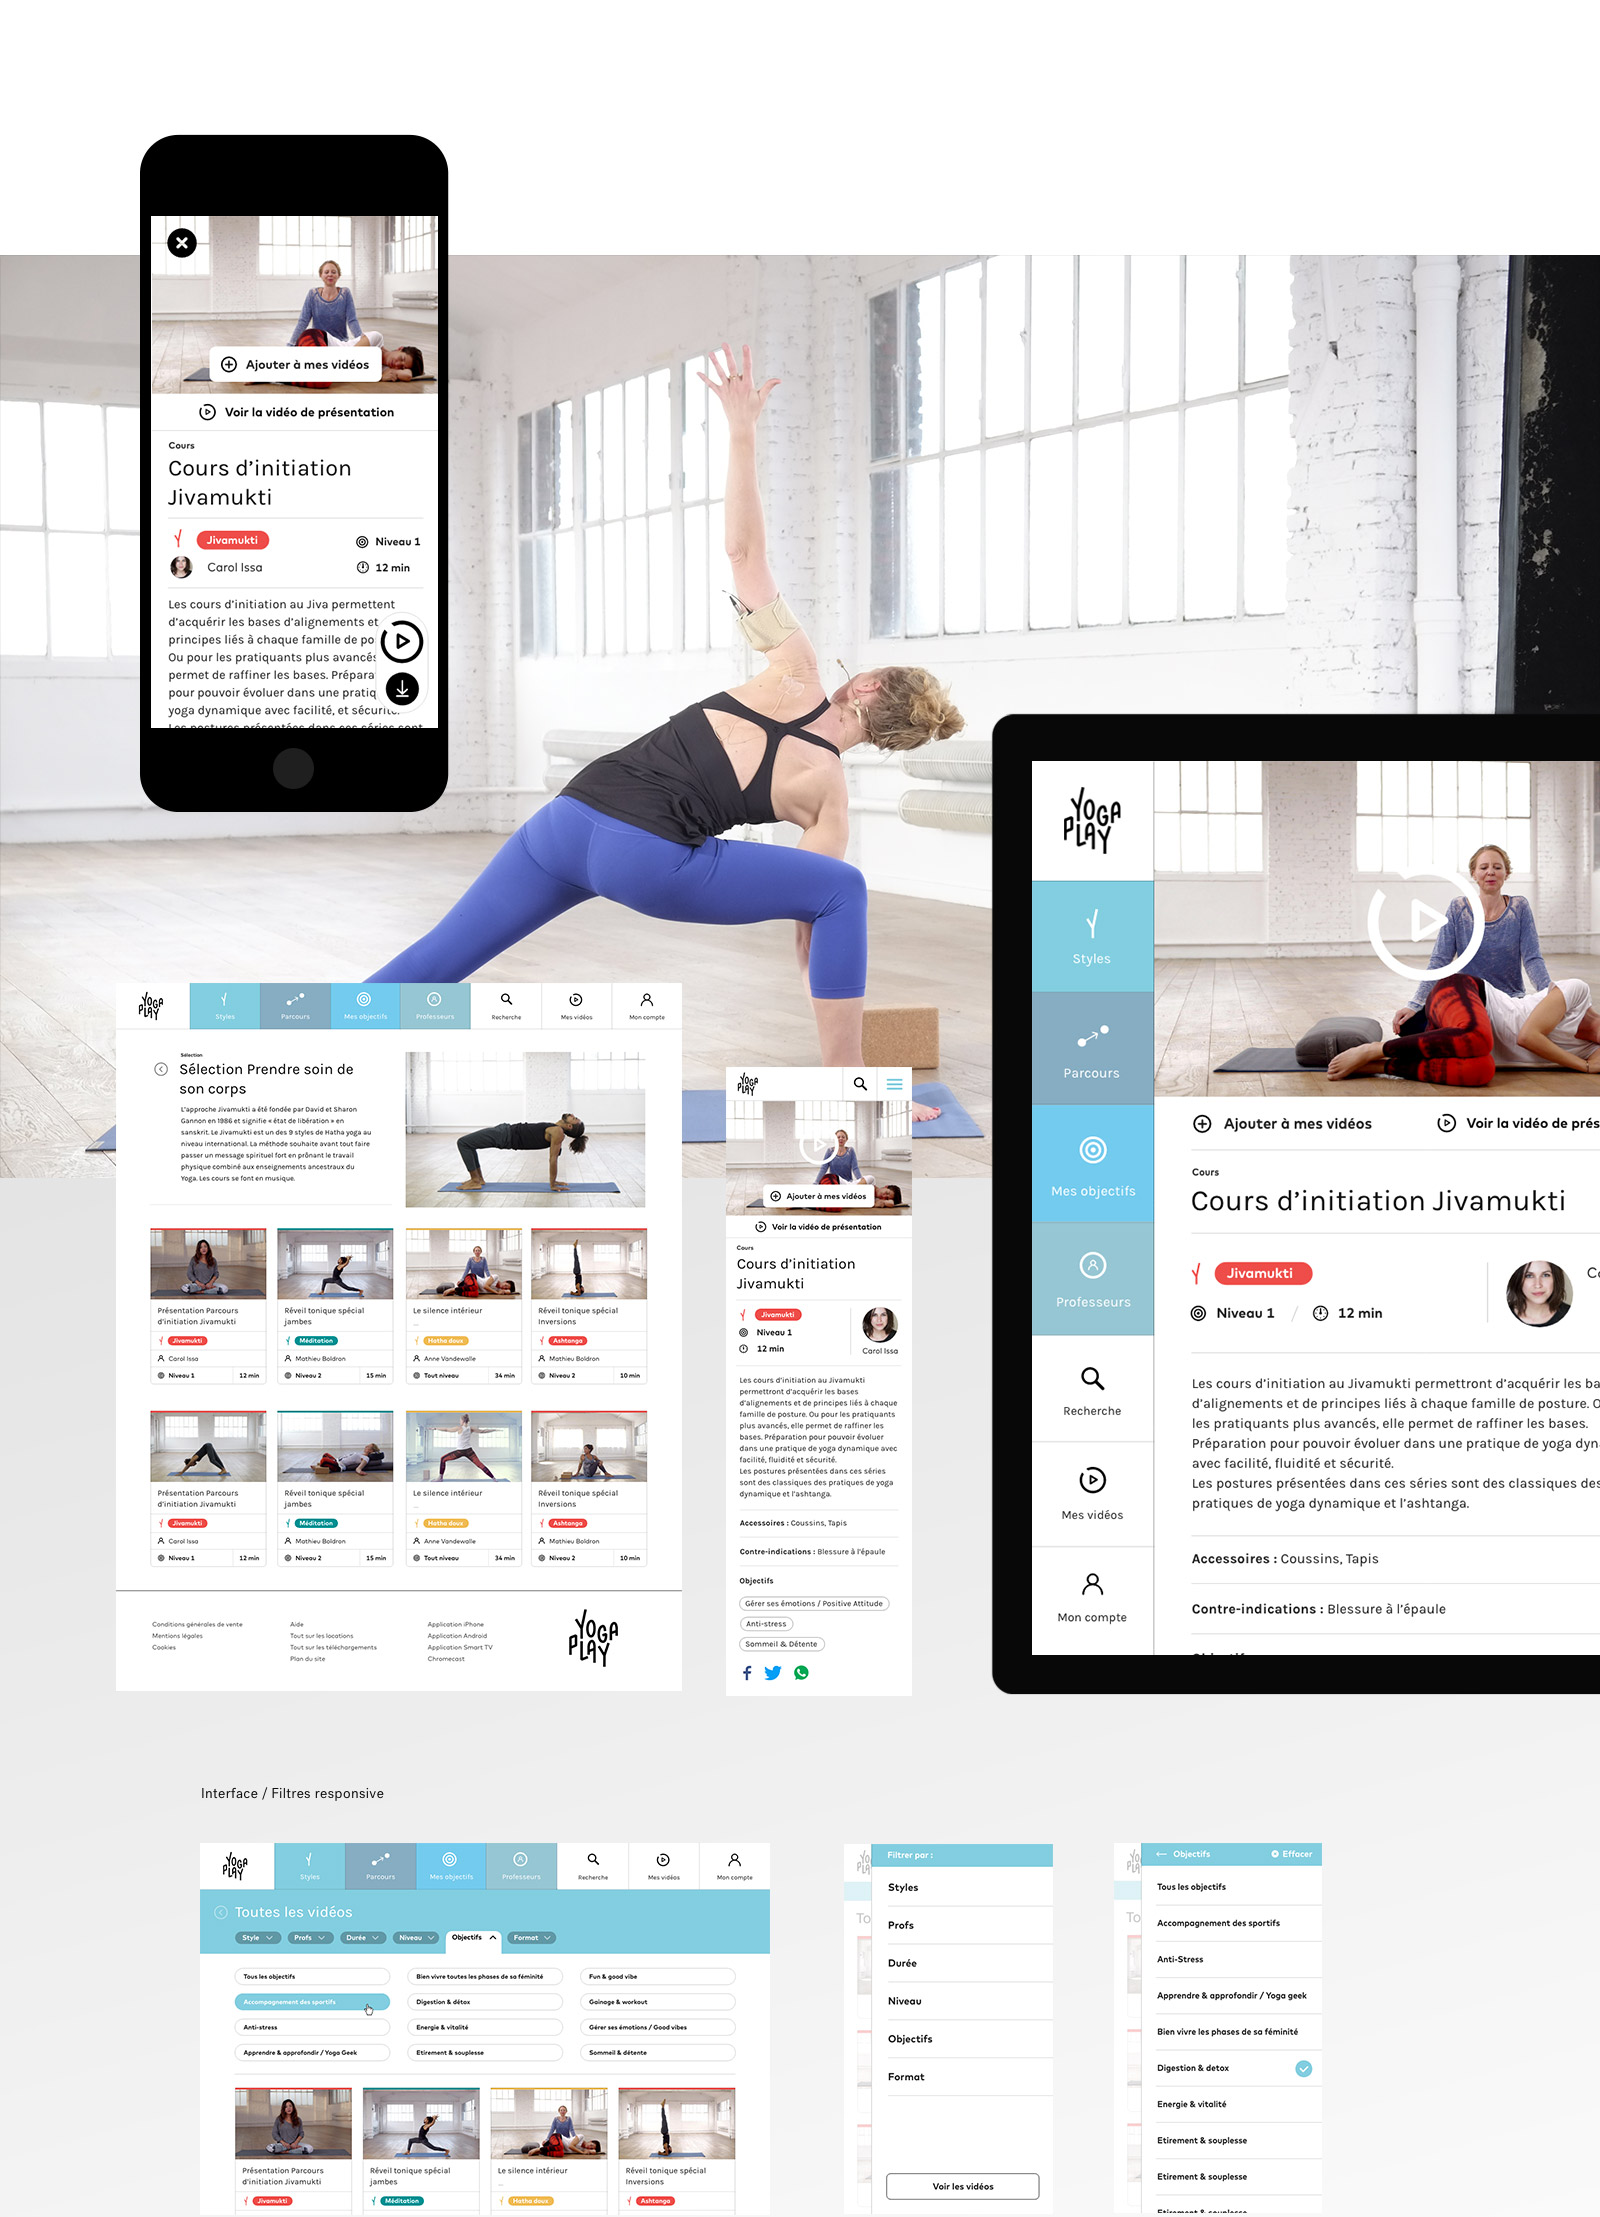 yogaplay_cours // Fabien Stimulak, UX UI Designer, DA digital, Paris, France